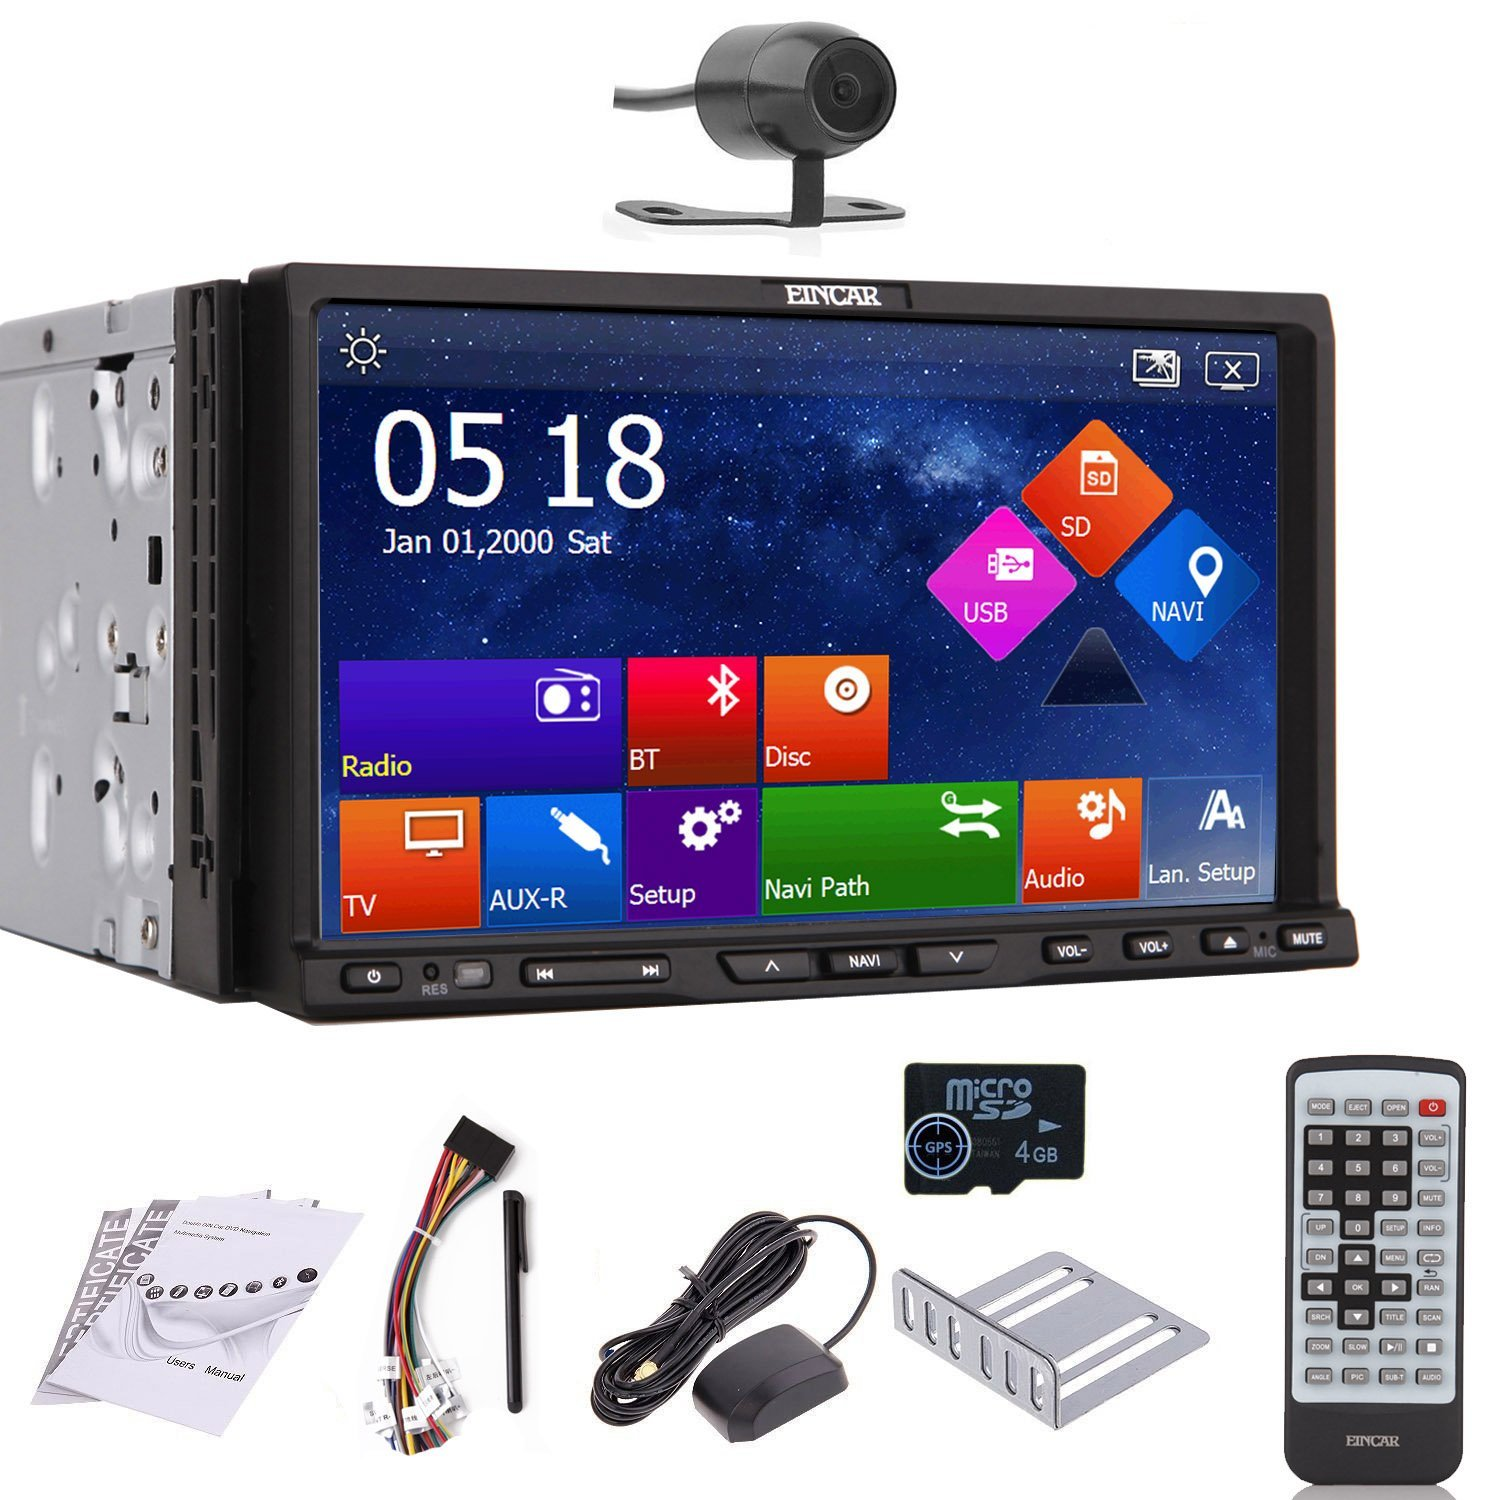 Eincar GPS Navigation Rear Camera 7-inch Motorized Capacitive Double-2 DIN in Dash Car DVD Player Touch Screen LCD Monitor with Dvd/cd/mp3/mp4/usb/sd/am/fm/rds Radio/bluetooth/stereo/audio and SAT NAV Wall Paper Exchange Hd:800*480 Lcd+windows Win 8 Ui Design Free GPS Antenna+free GPS Map+free